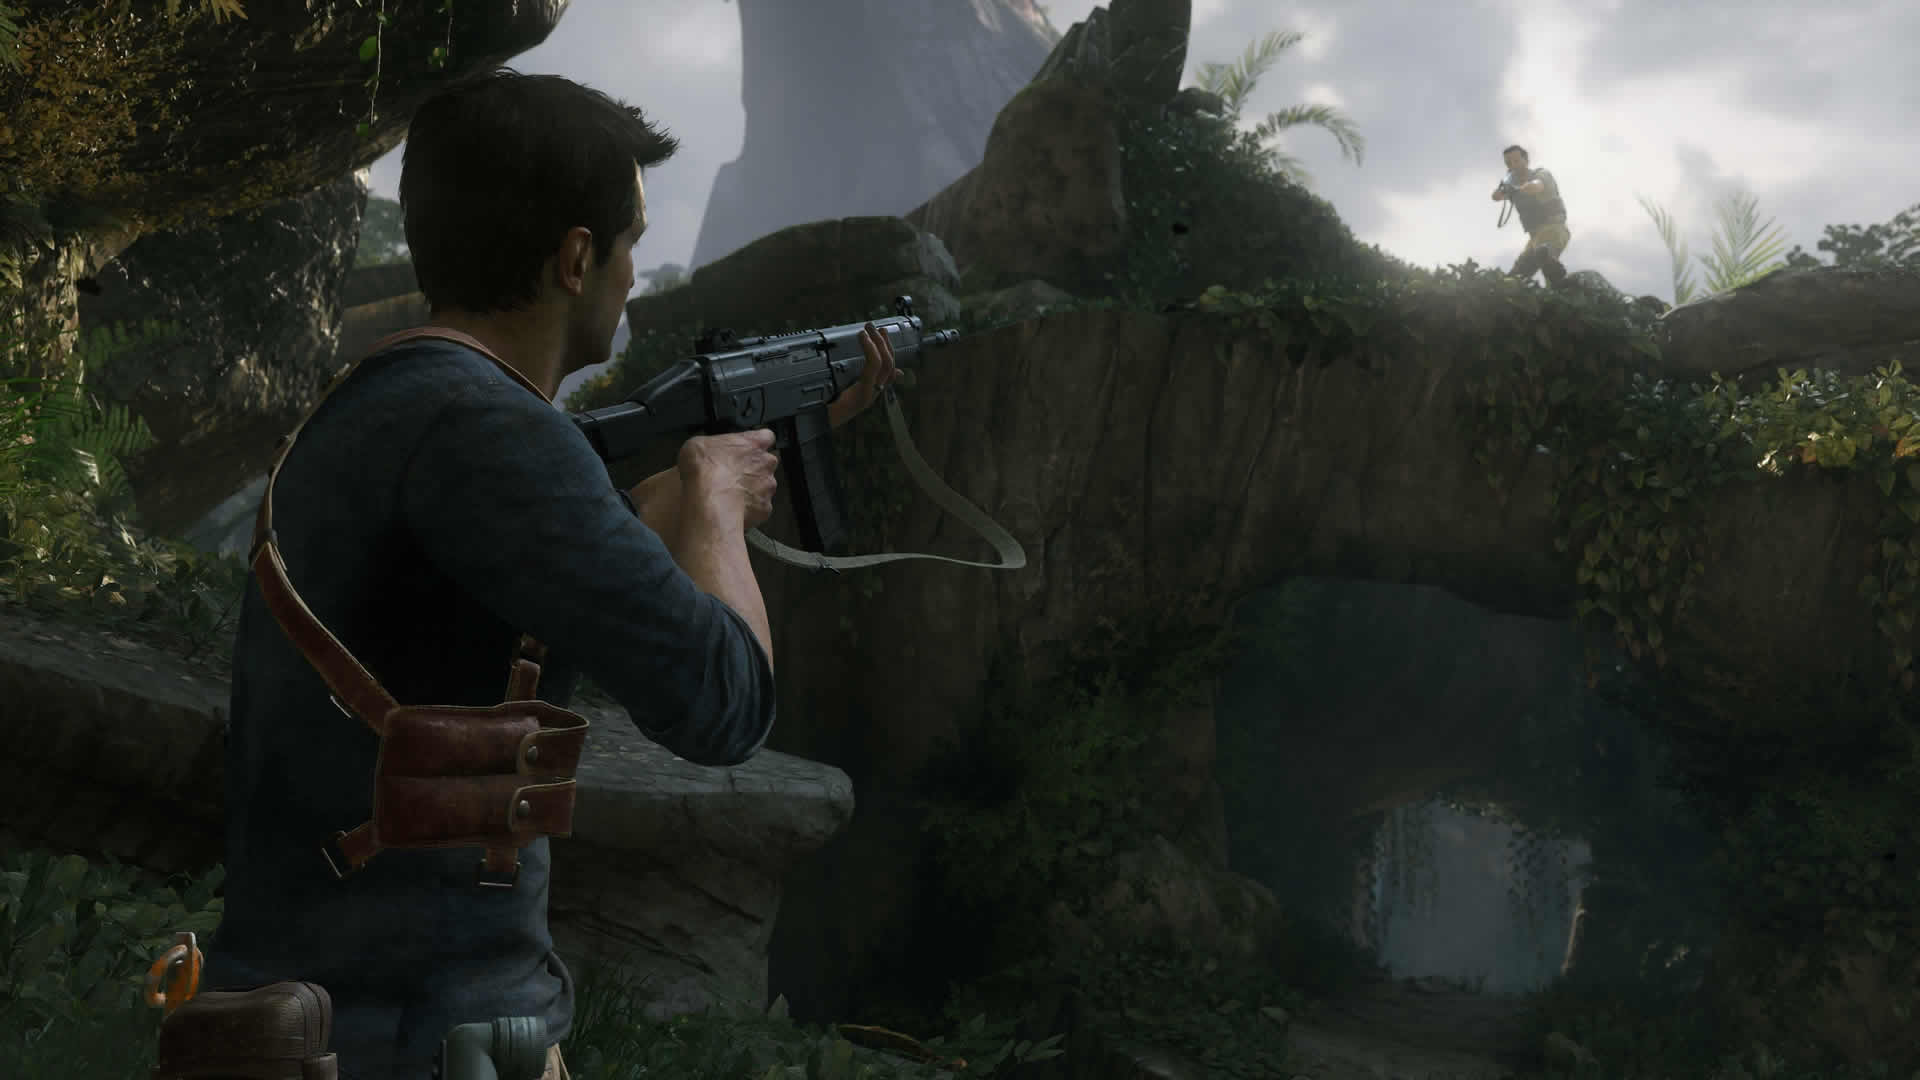 Uncharted 4 Cover Art and Images